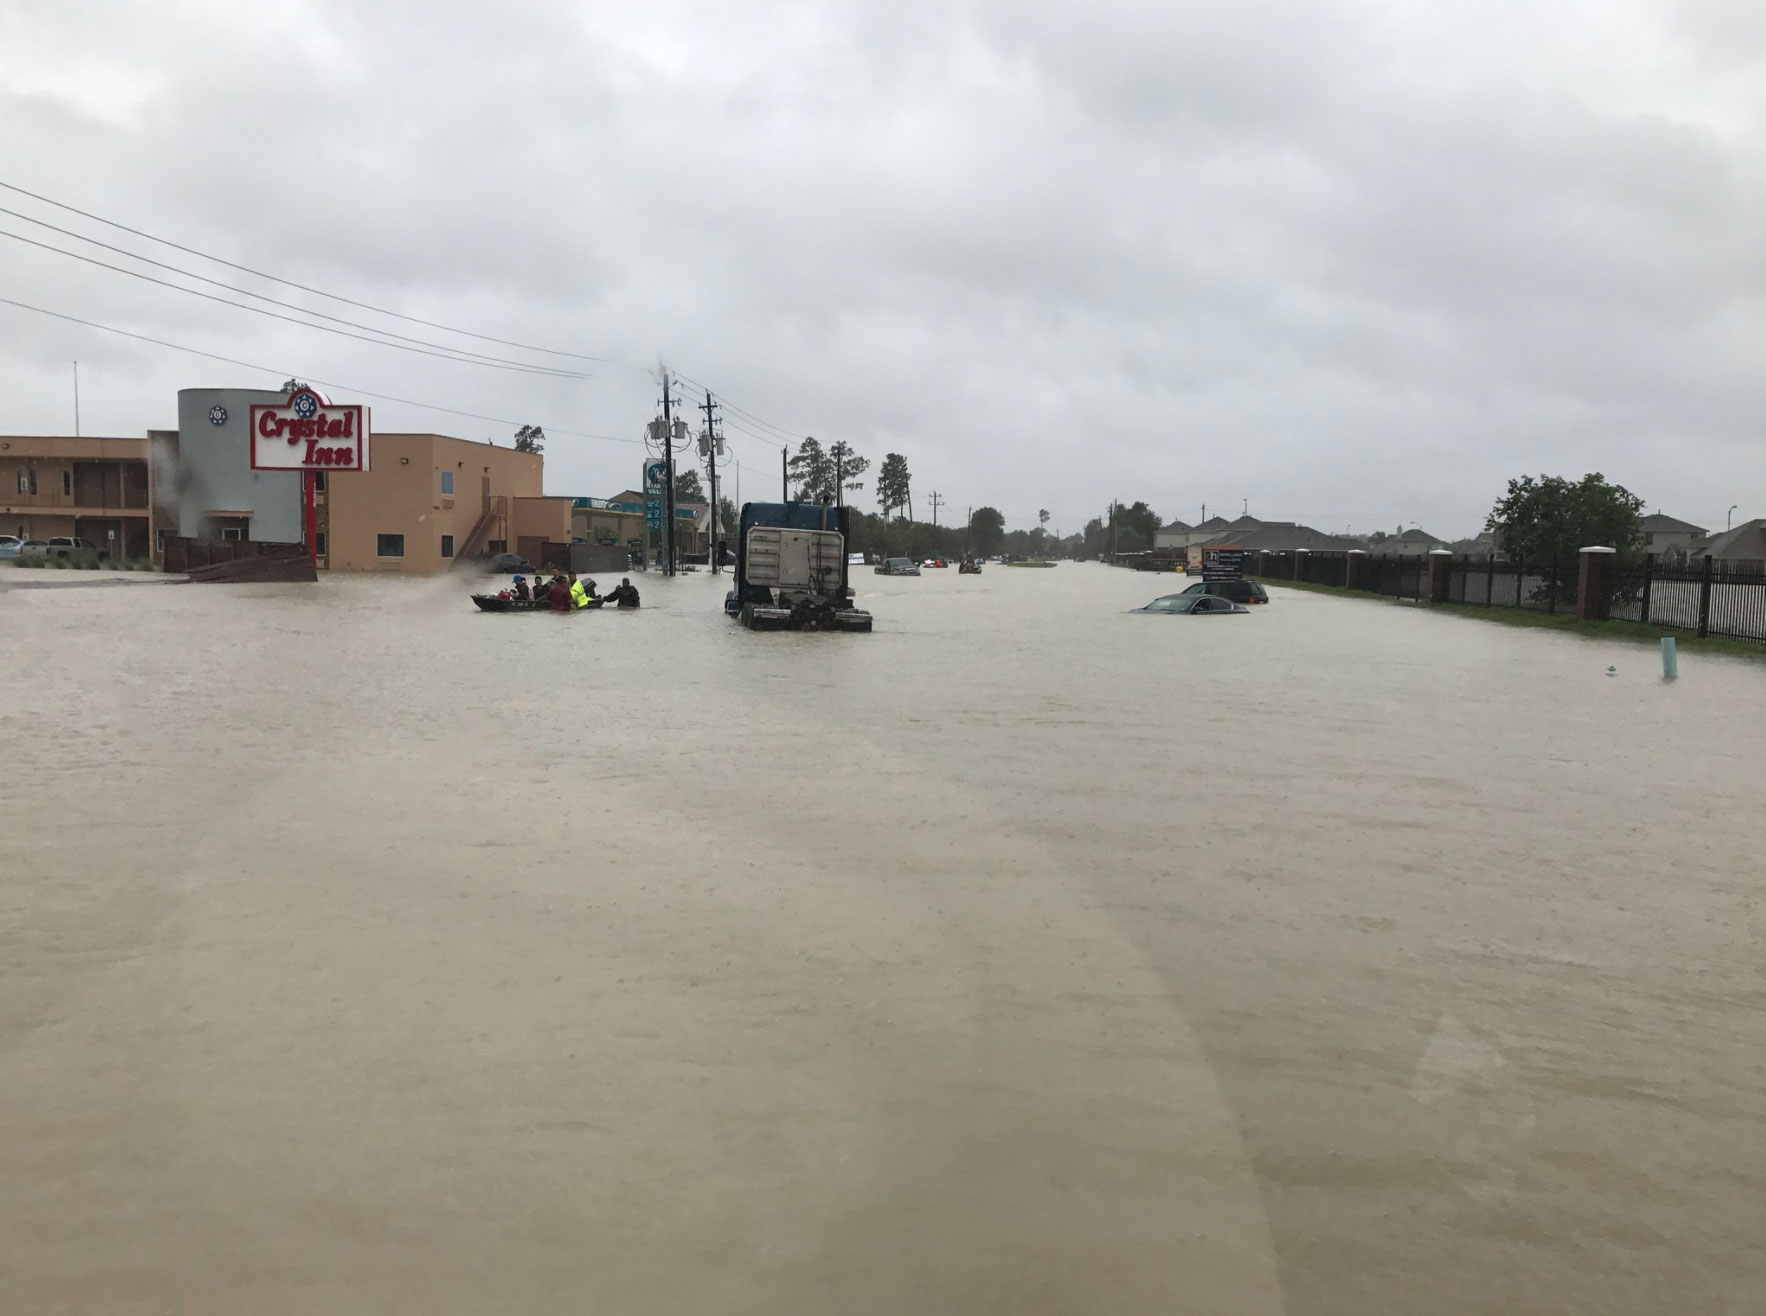 "<div class=""meta image-caption""><div class=""origin-logo origin-image none""><span>none</span></div><span class=""caption-text"">The Harris County Sheriff posted this photo on Tuesday while helping out with rescues on Tidwell Rd in Houston. (SheriffEd_HCSO/Twitter)</span></div>"